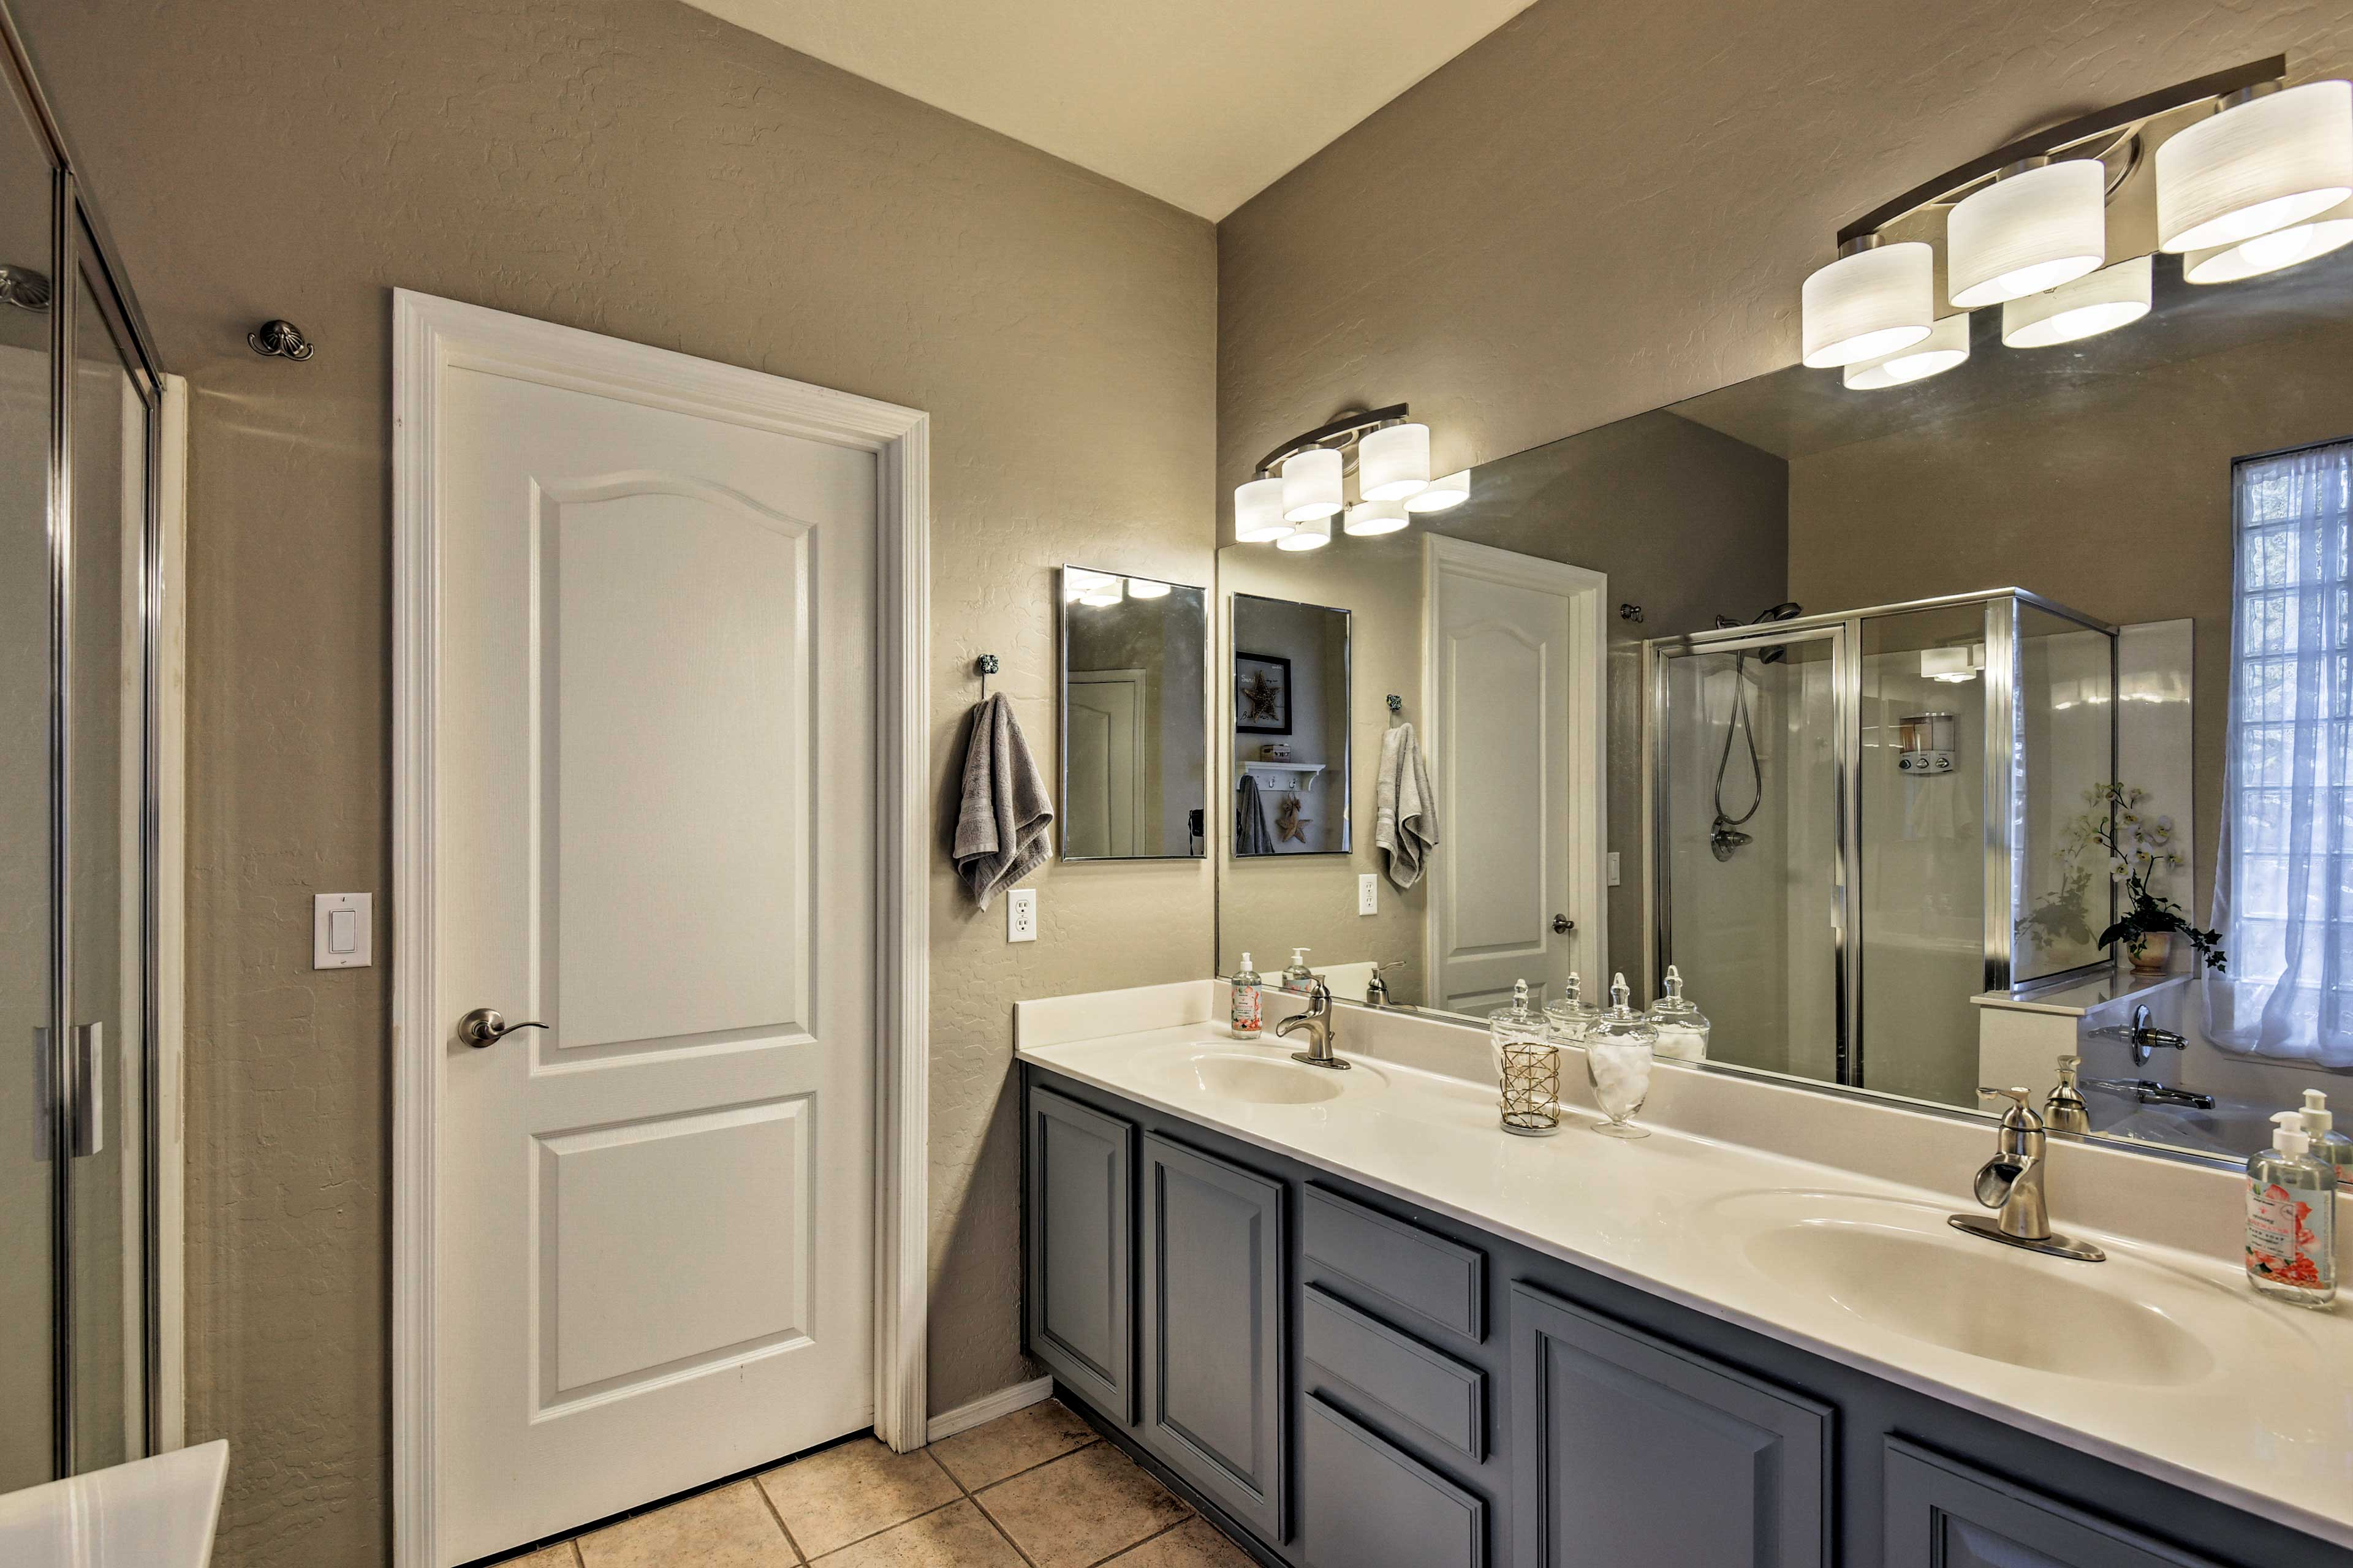 Dual sinks make it easy to get ready at the same time as your companion.